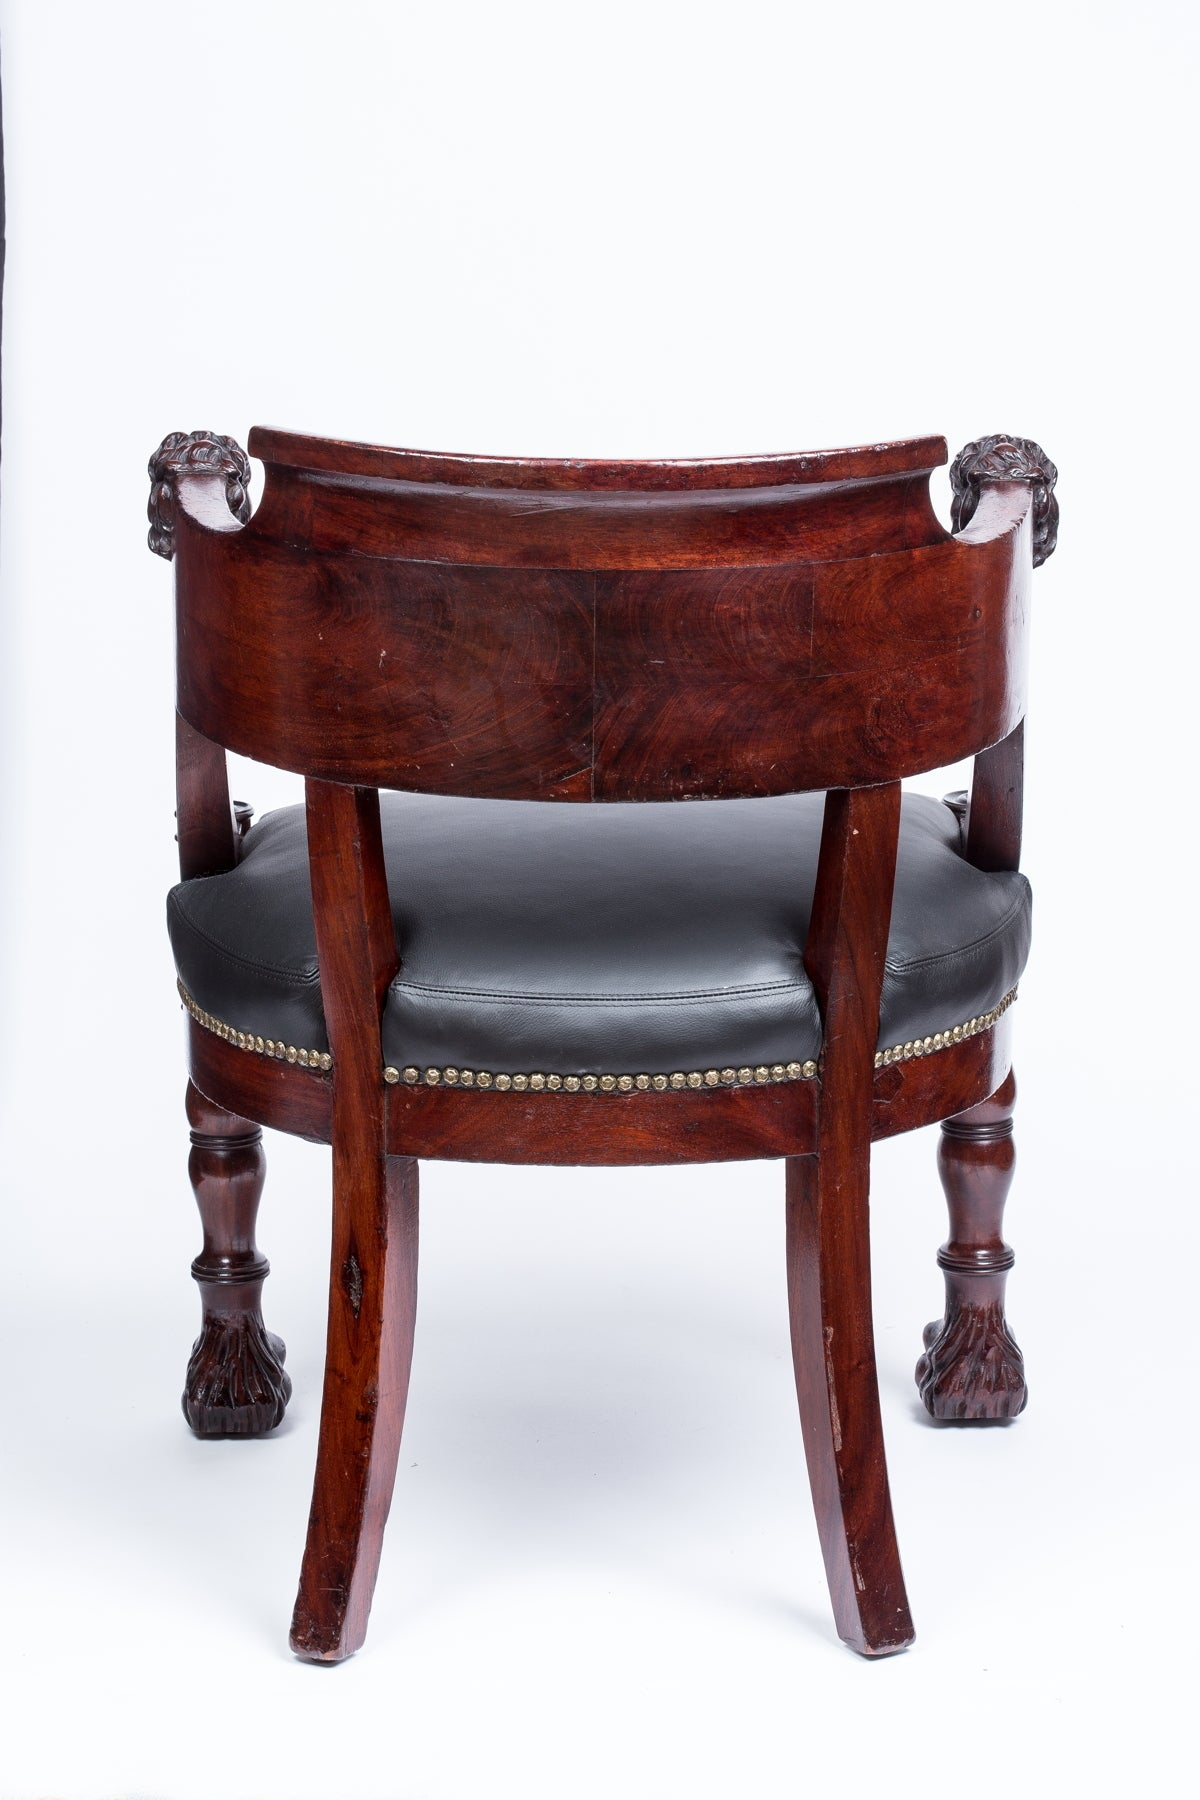 Empire Mahogany Fauteuil De Bureau Desk Armchair For Sale At 1stdibs